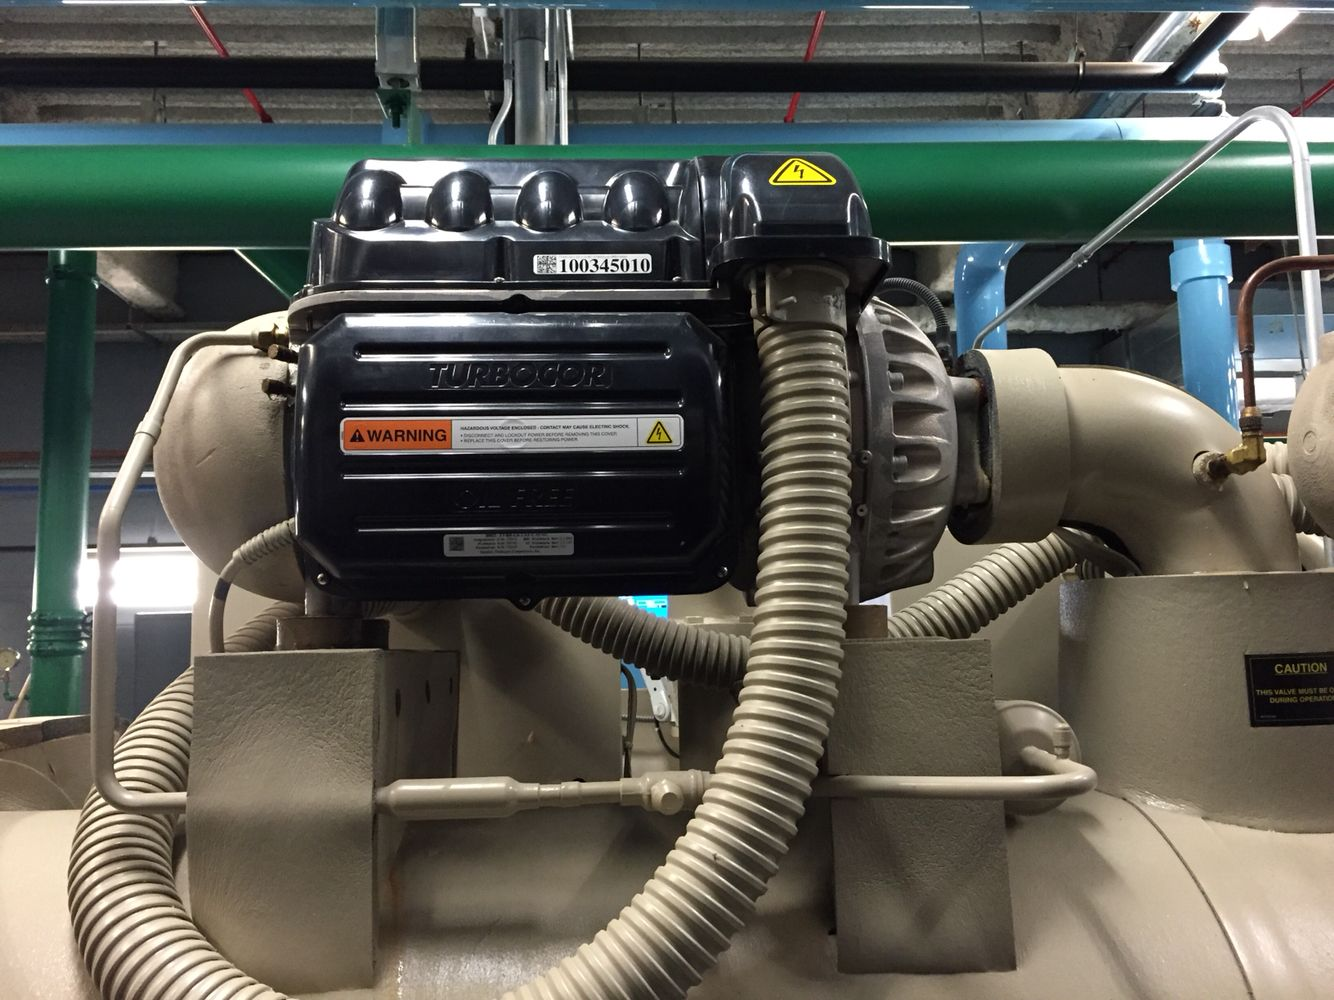 e7fbf22c40bfa1b3148283b20fd0c8c4 8 best centrifugal chillers images on pinterest conditioning  at bayanpartner.co